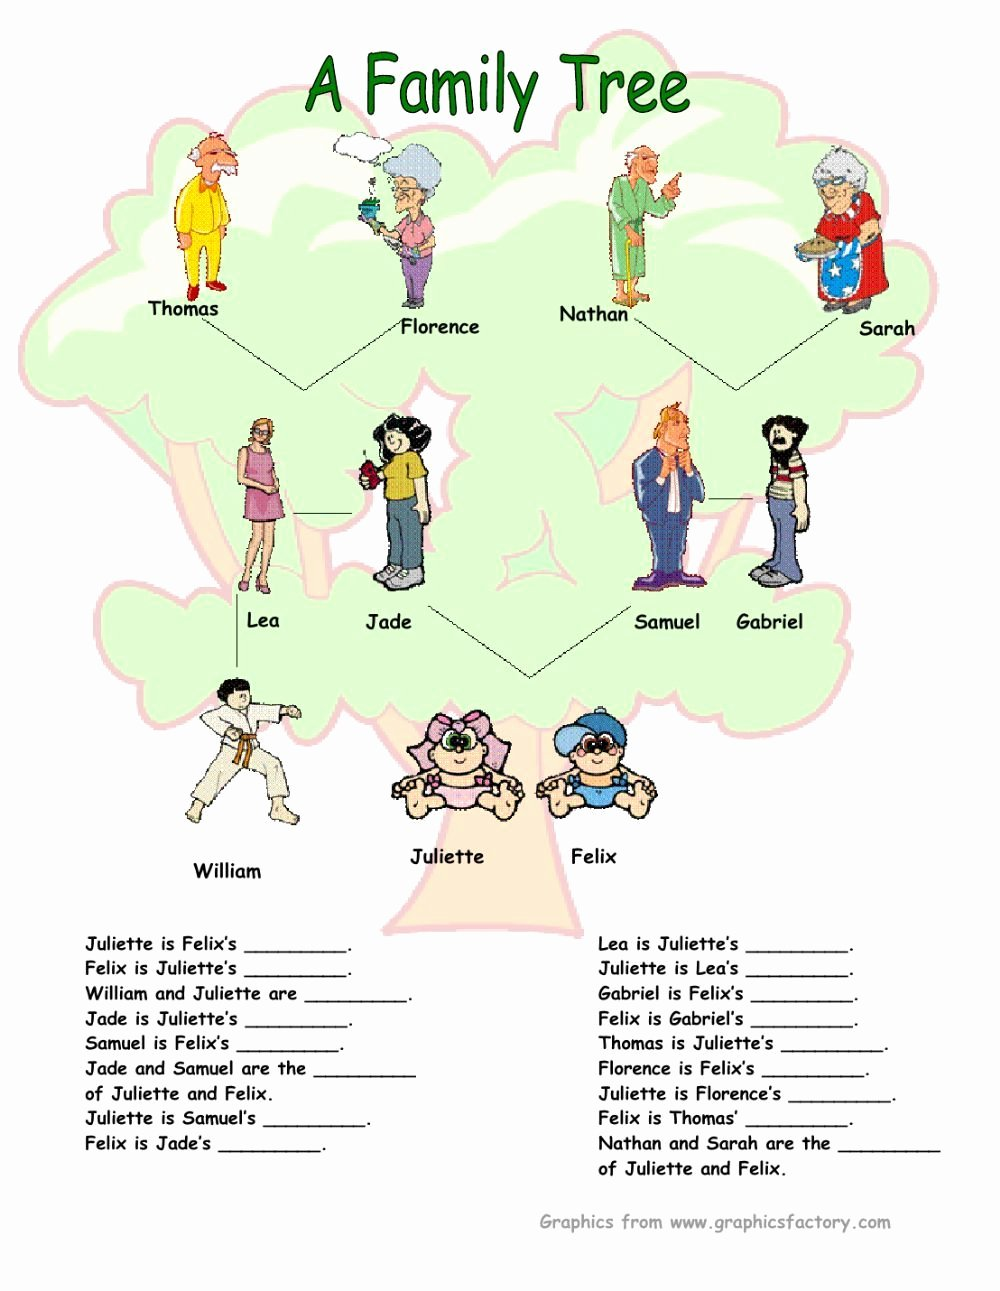 Family Tree Worksheet Printable Elegant Family Tree Interactive Worksheet